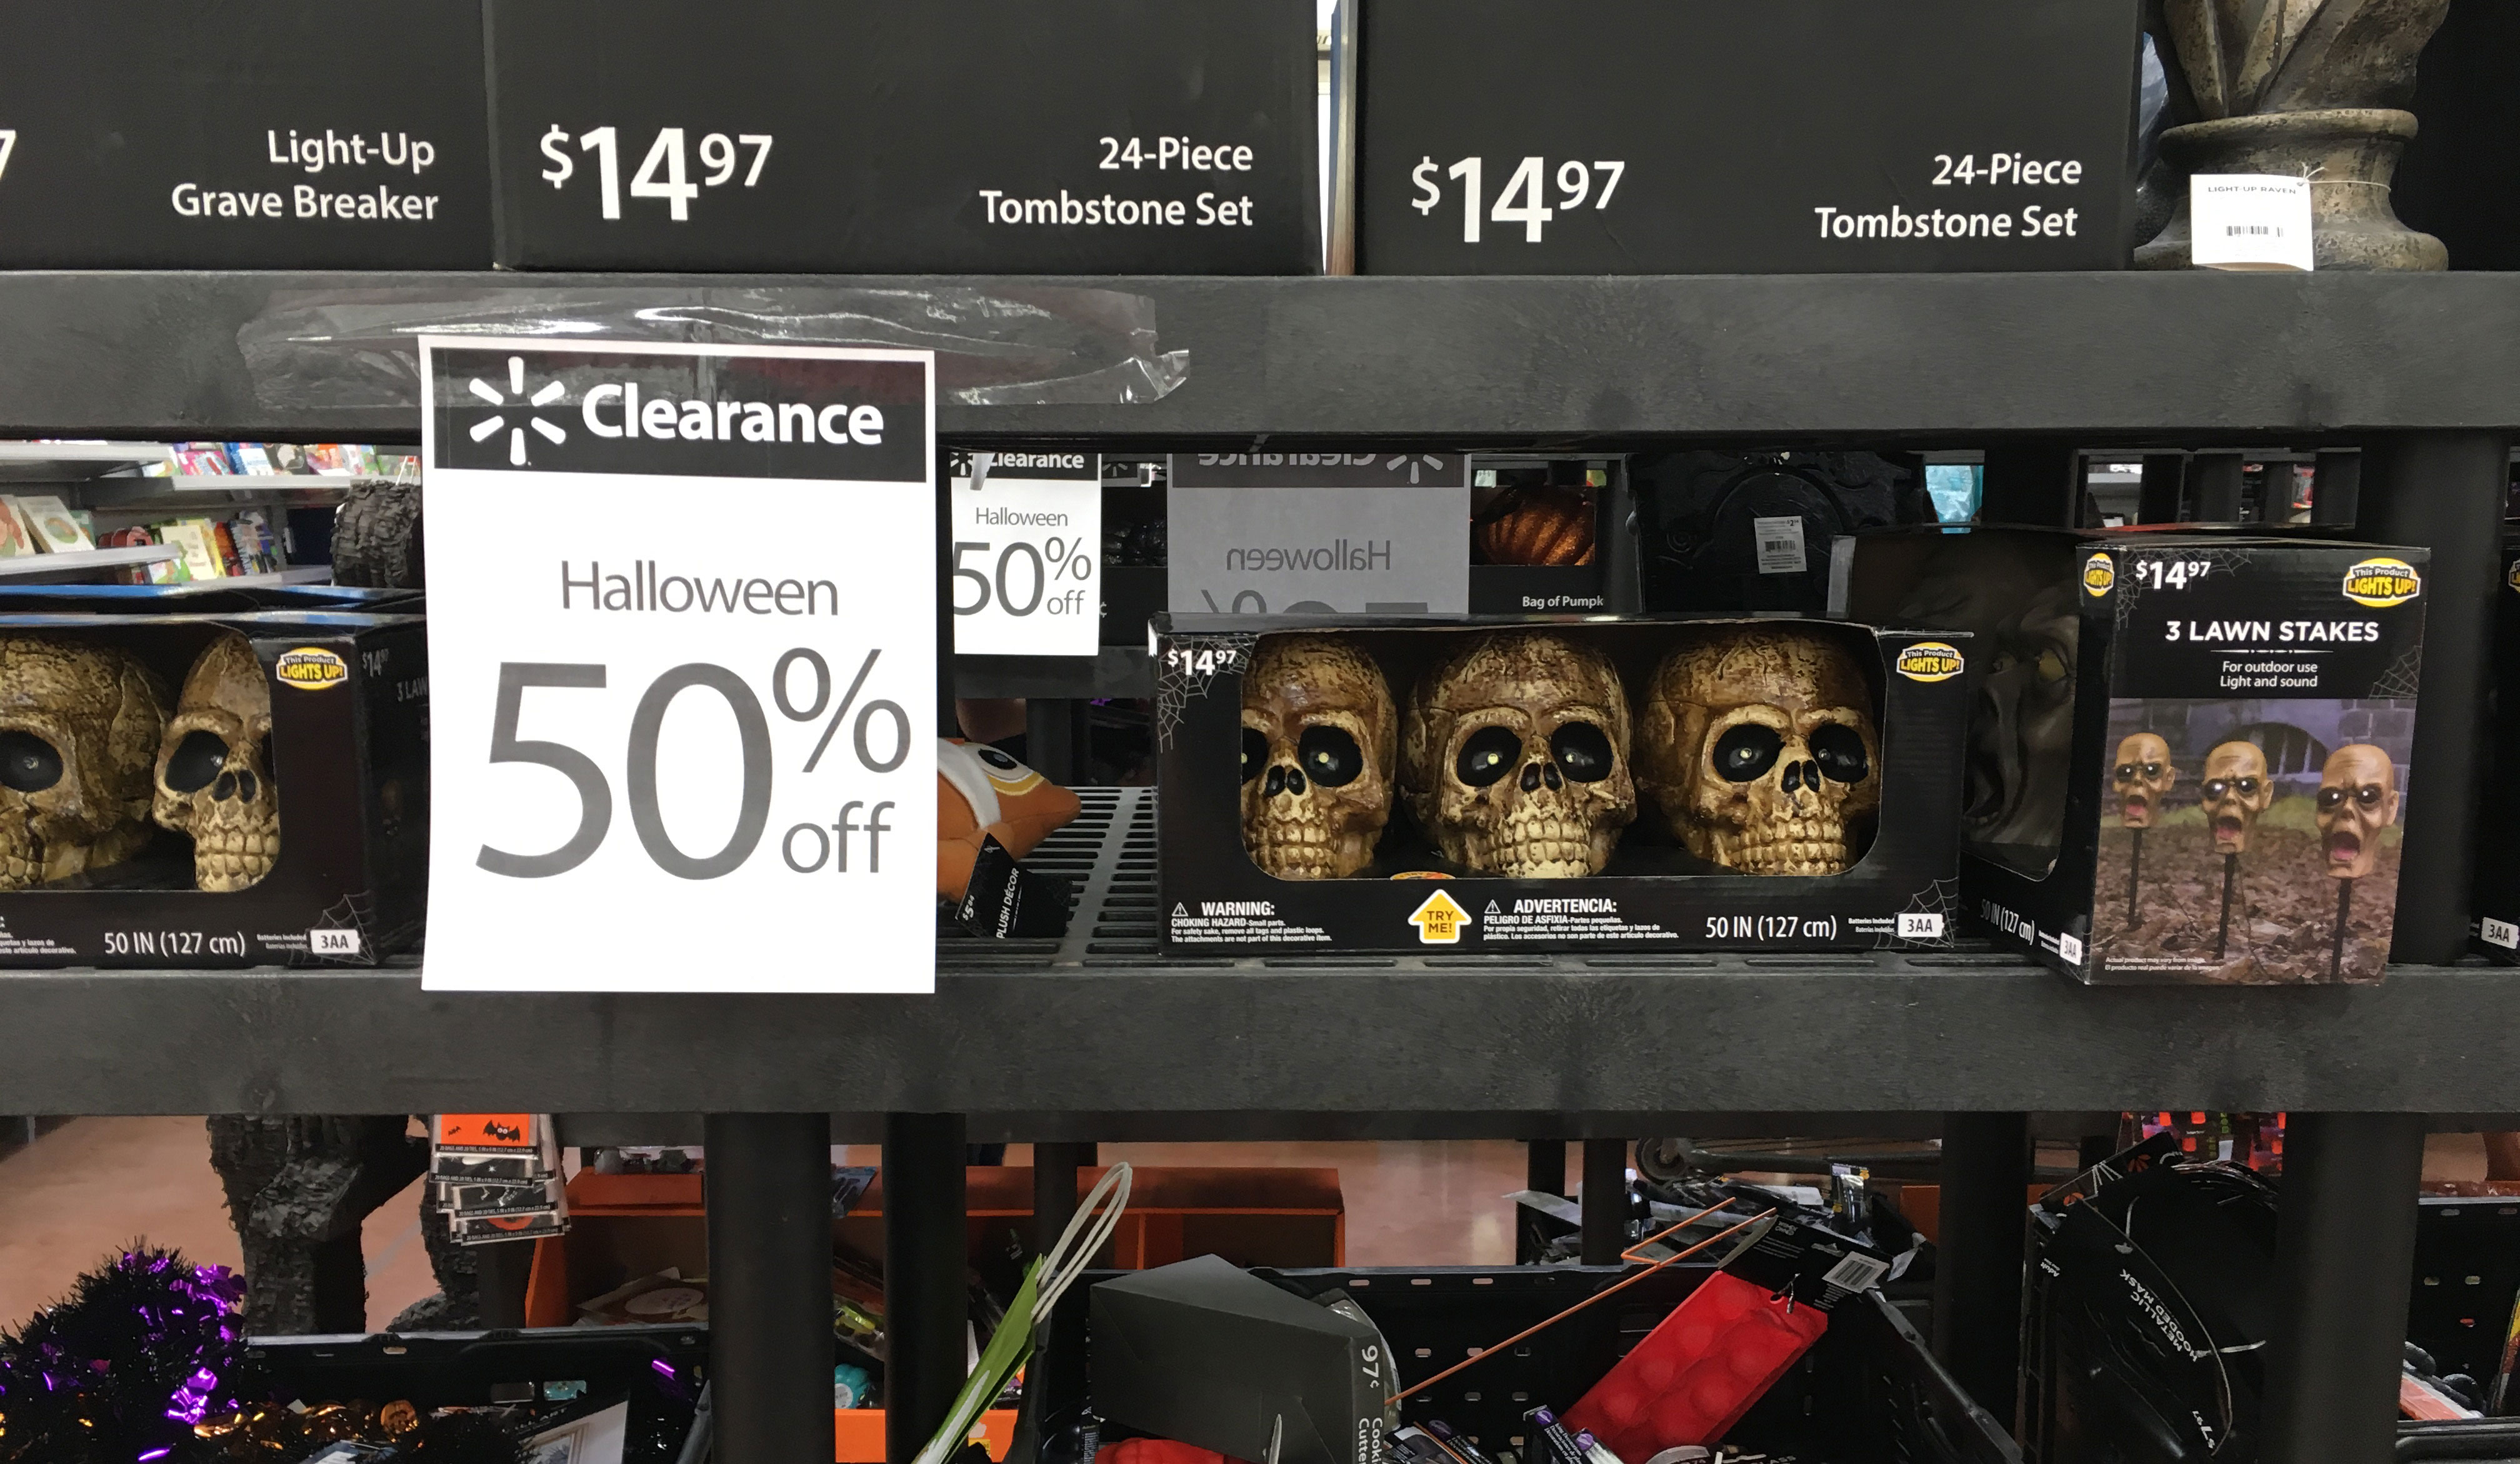 Hurry Tide Over 50 Off At Walmart Shopping With Natalie Oct 5 6 50 Off Halloween Clearance At